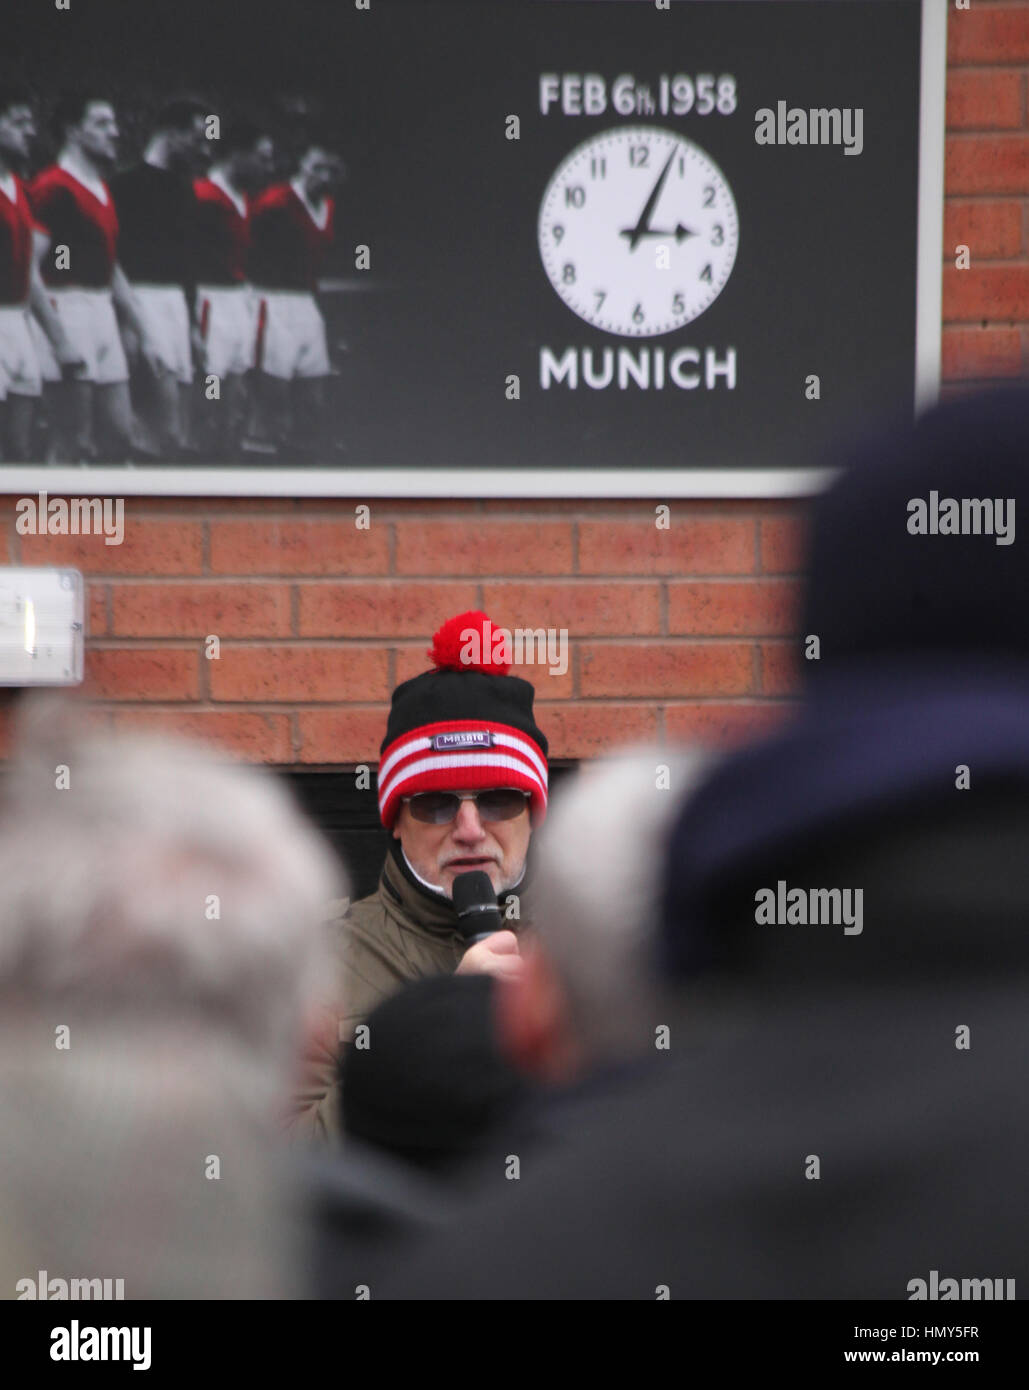 Manchester United supporters outside the football club on the 59th anniversary of the Munich Air Disaster, 6/2/17. - Stock Image